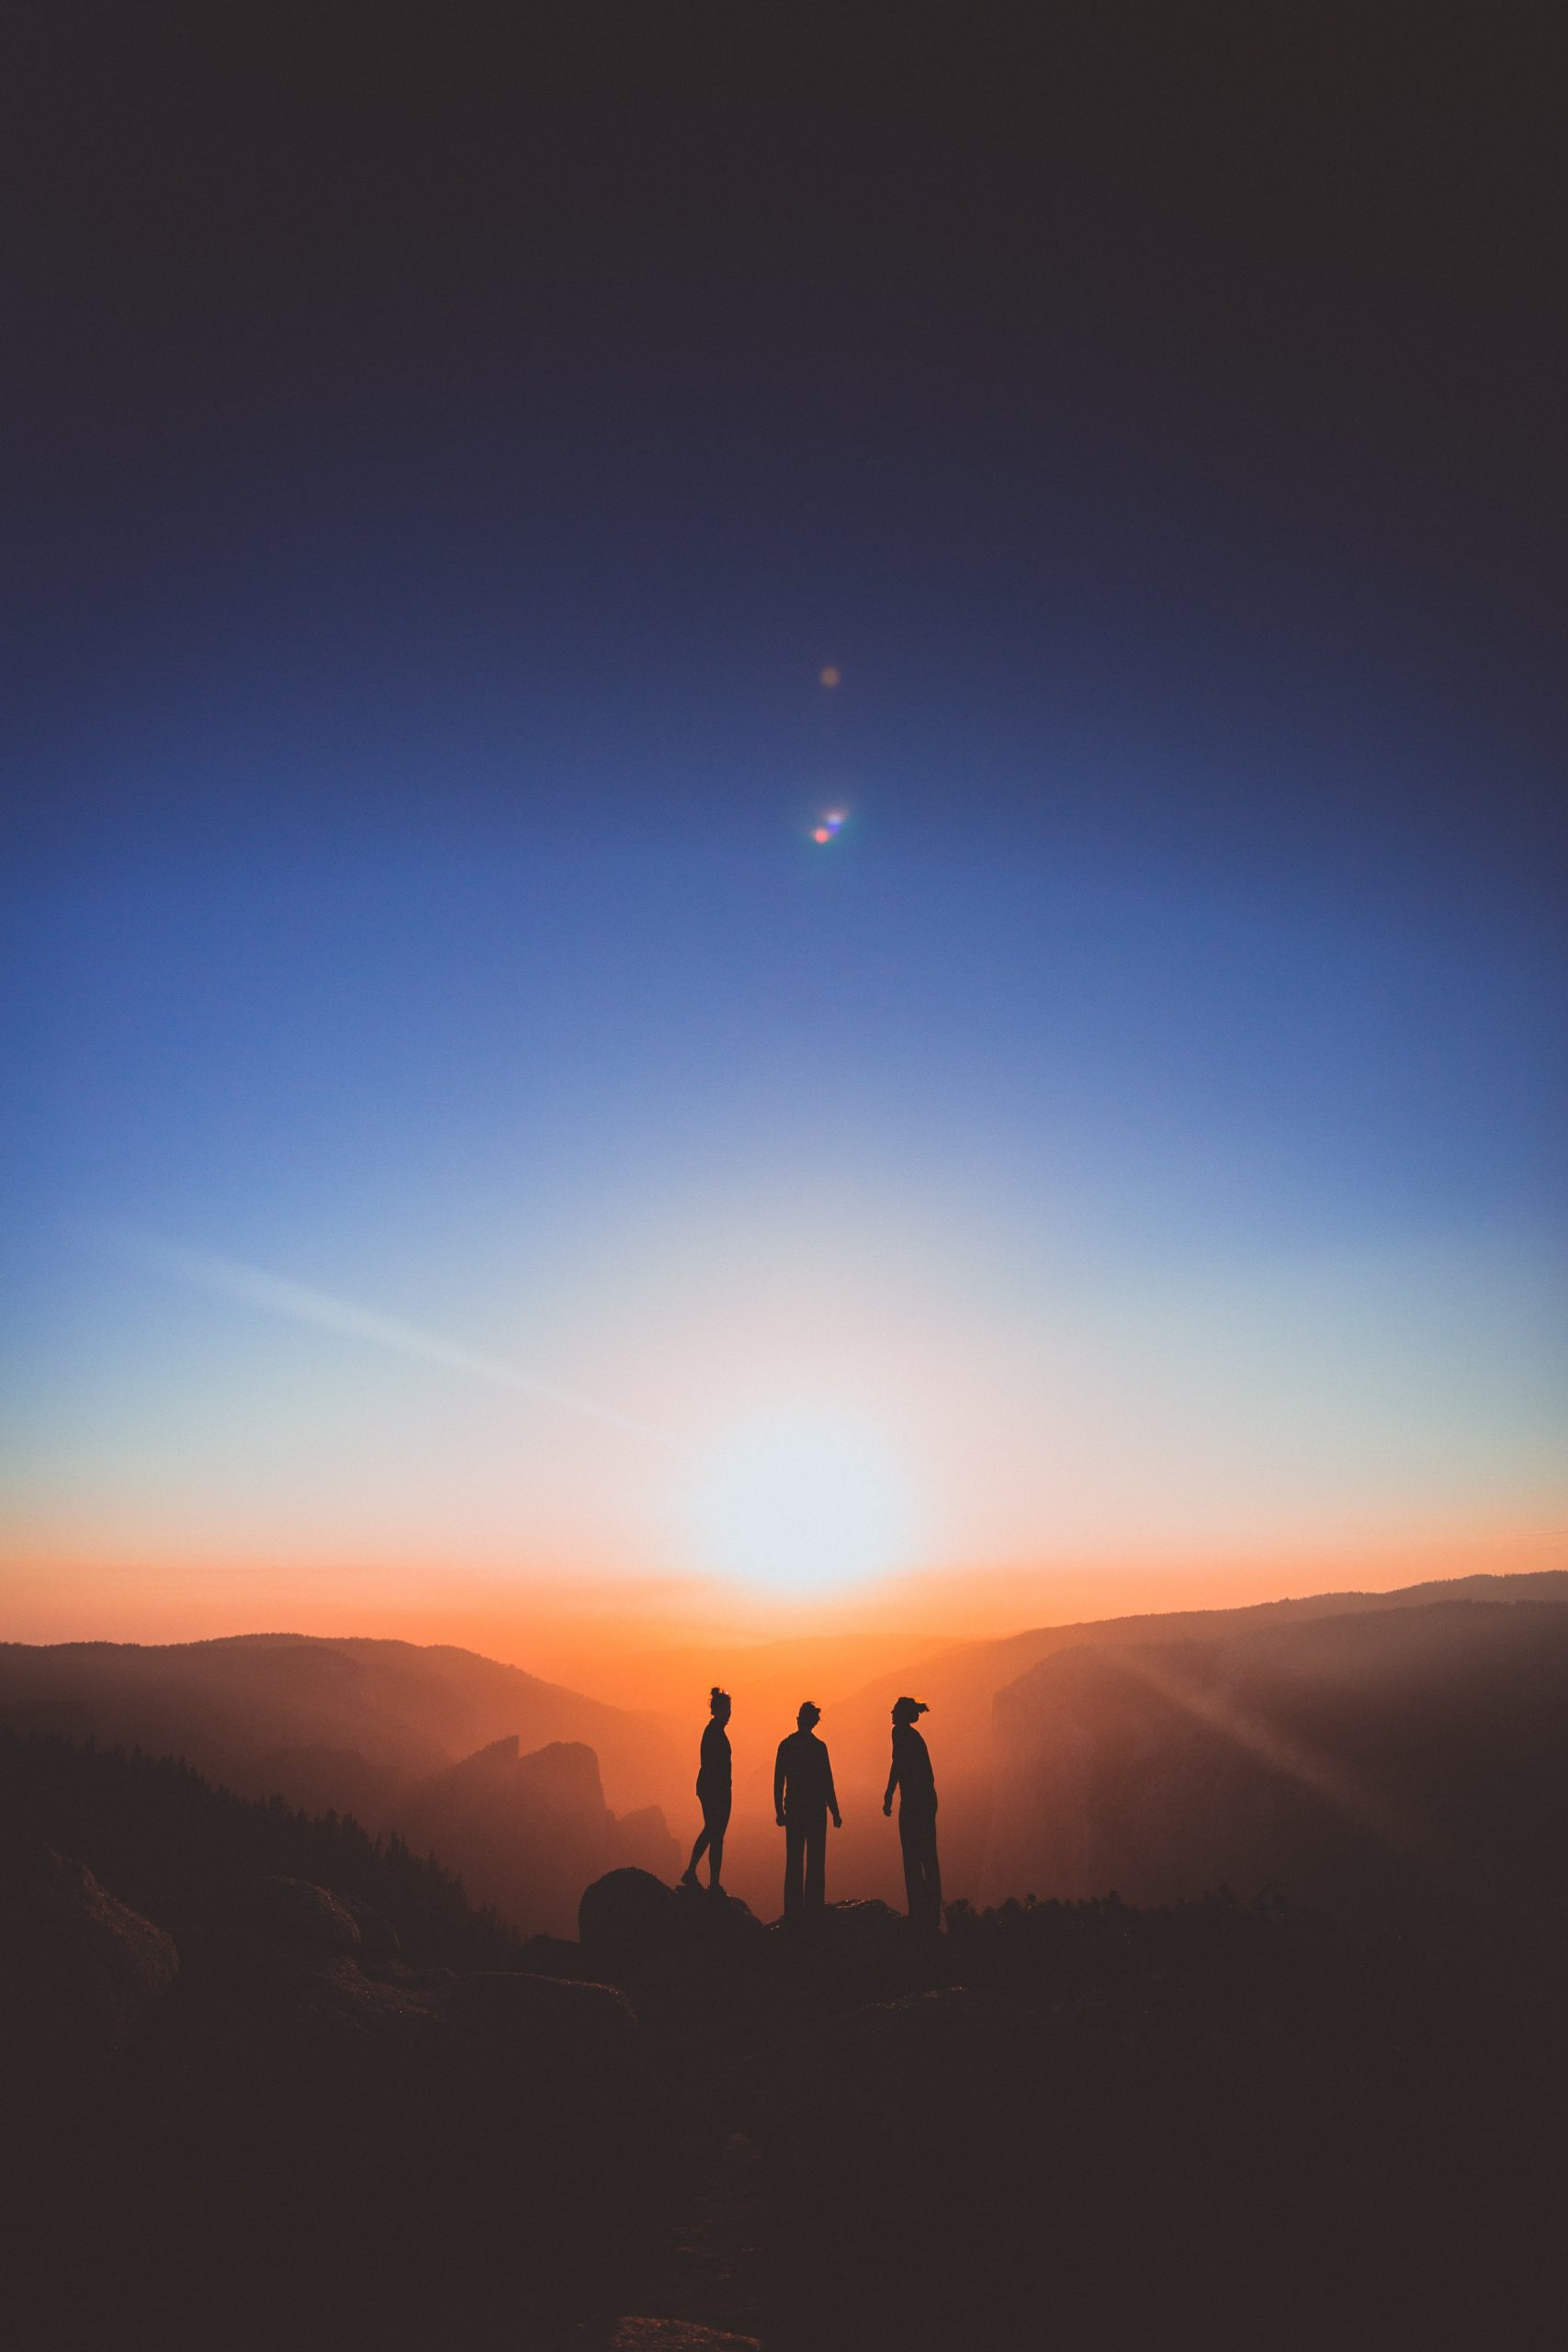 Let the sun rise and survive together